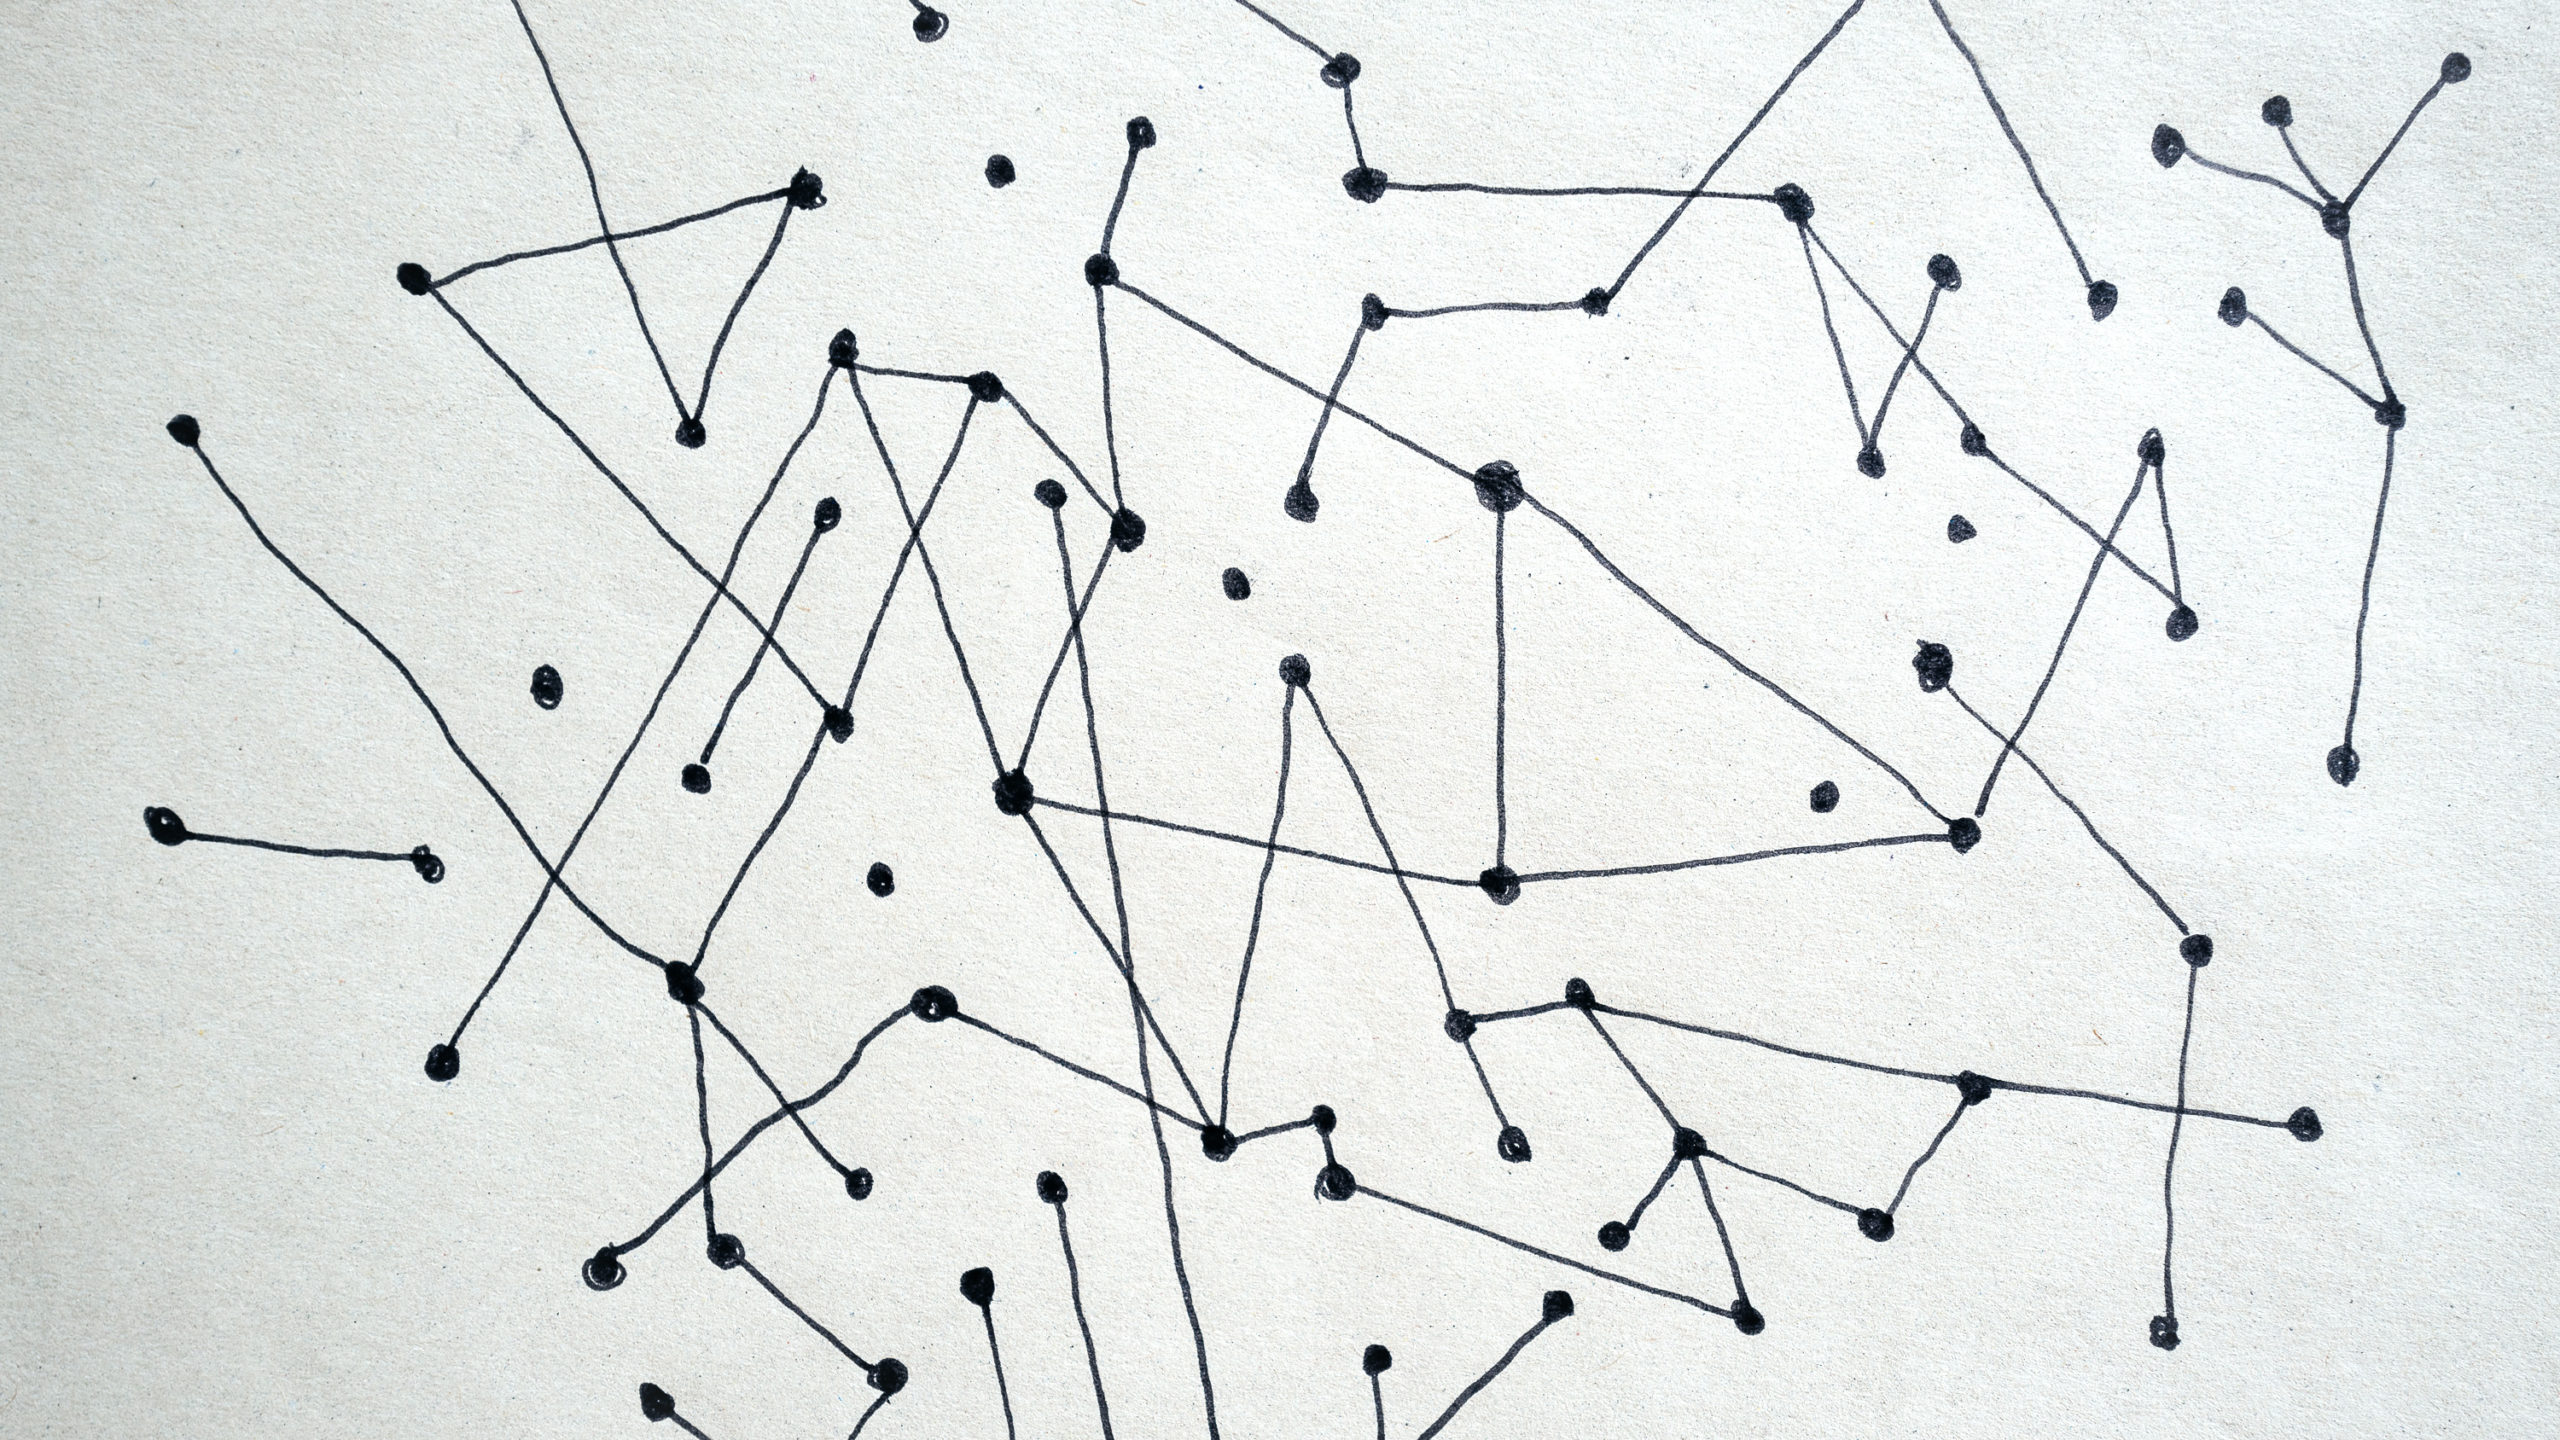 Doodles of lines and dots connecting